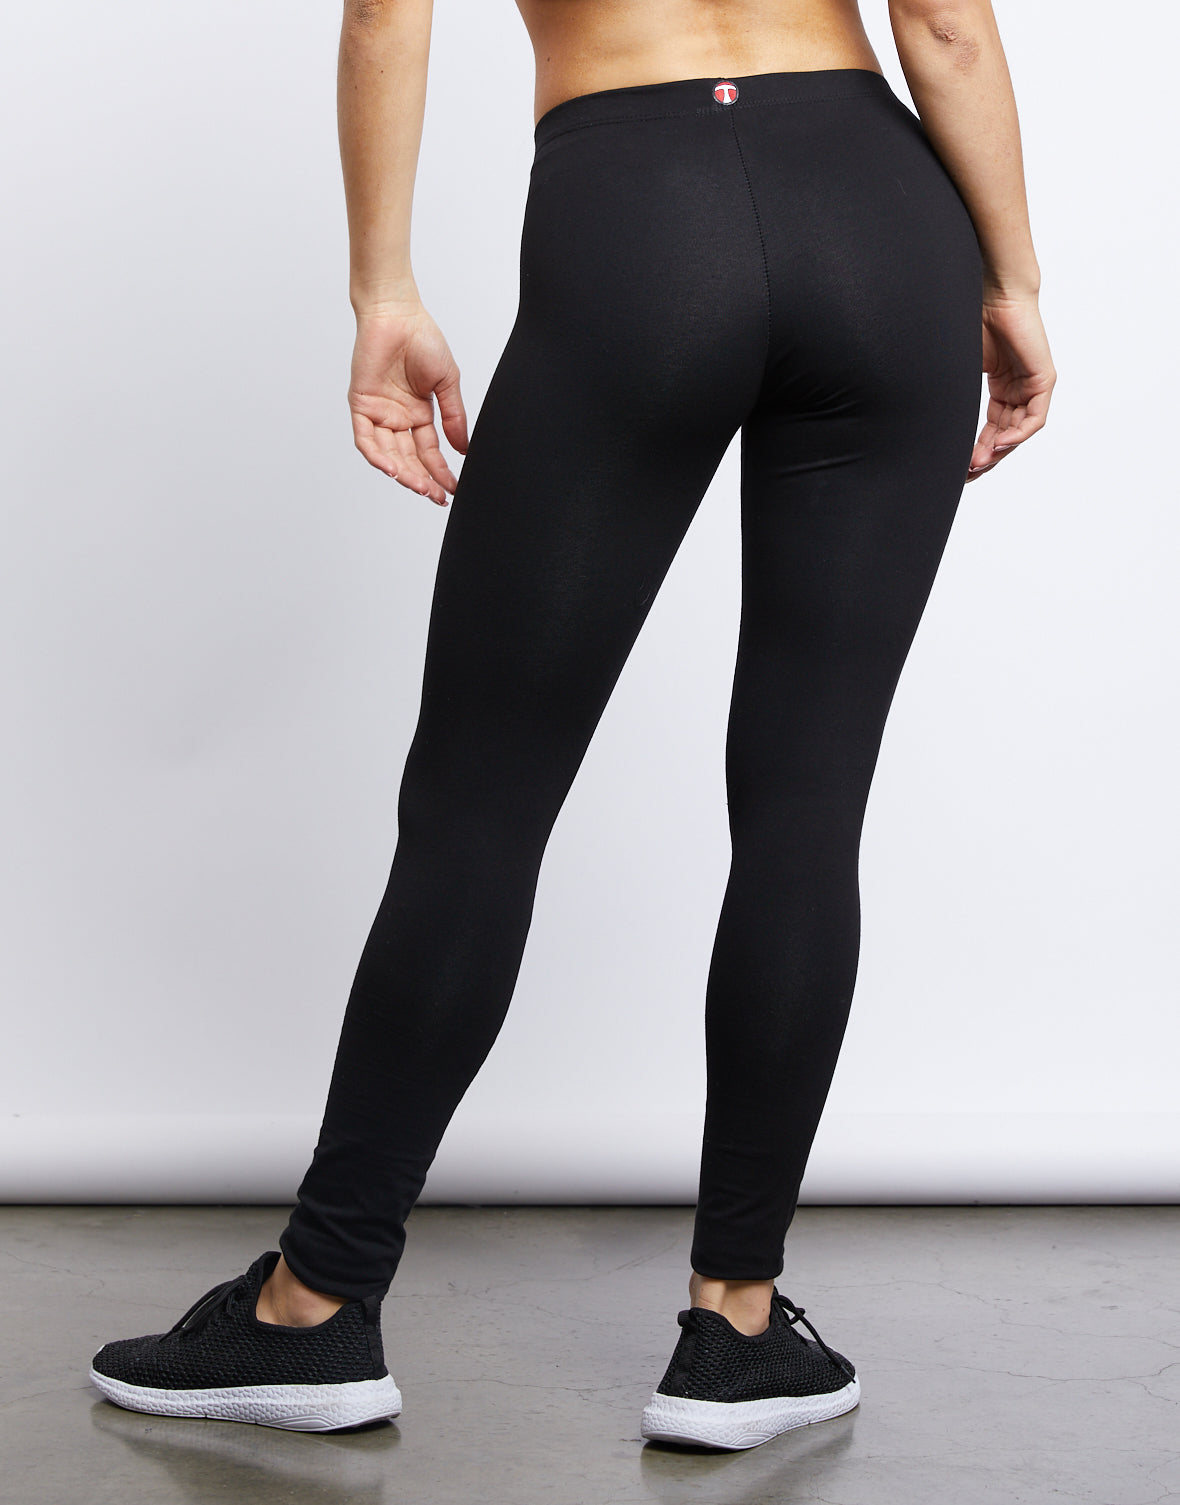 Bold Moves High Waisted Leggings